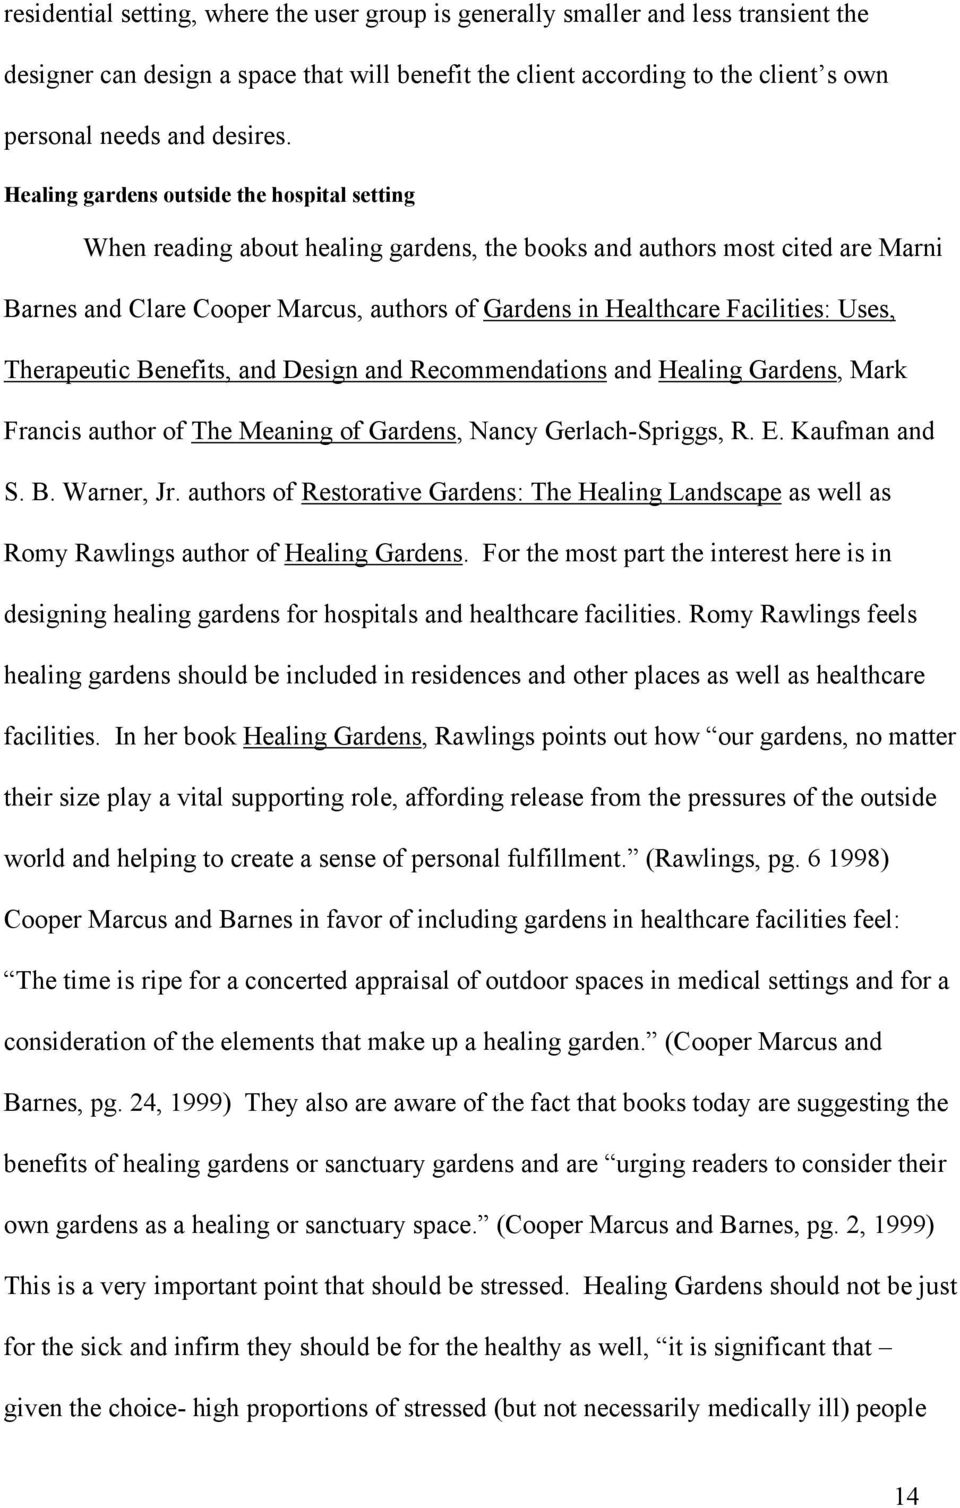 Facilities: Uses, Therapeutic Benefits, and Design and Recommendations and Healing Gardens, Mark Francis author of The Meaning of Gardens, Nancy Gerlach-Spriggs, R. E. Kaufman and S. B. Warner, Jr.